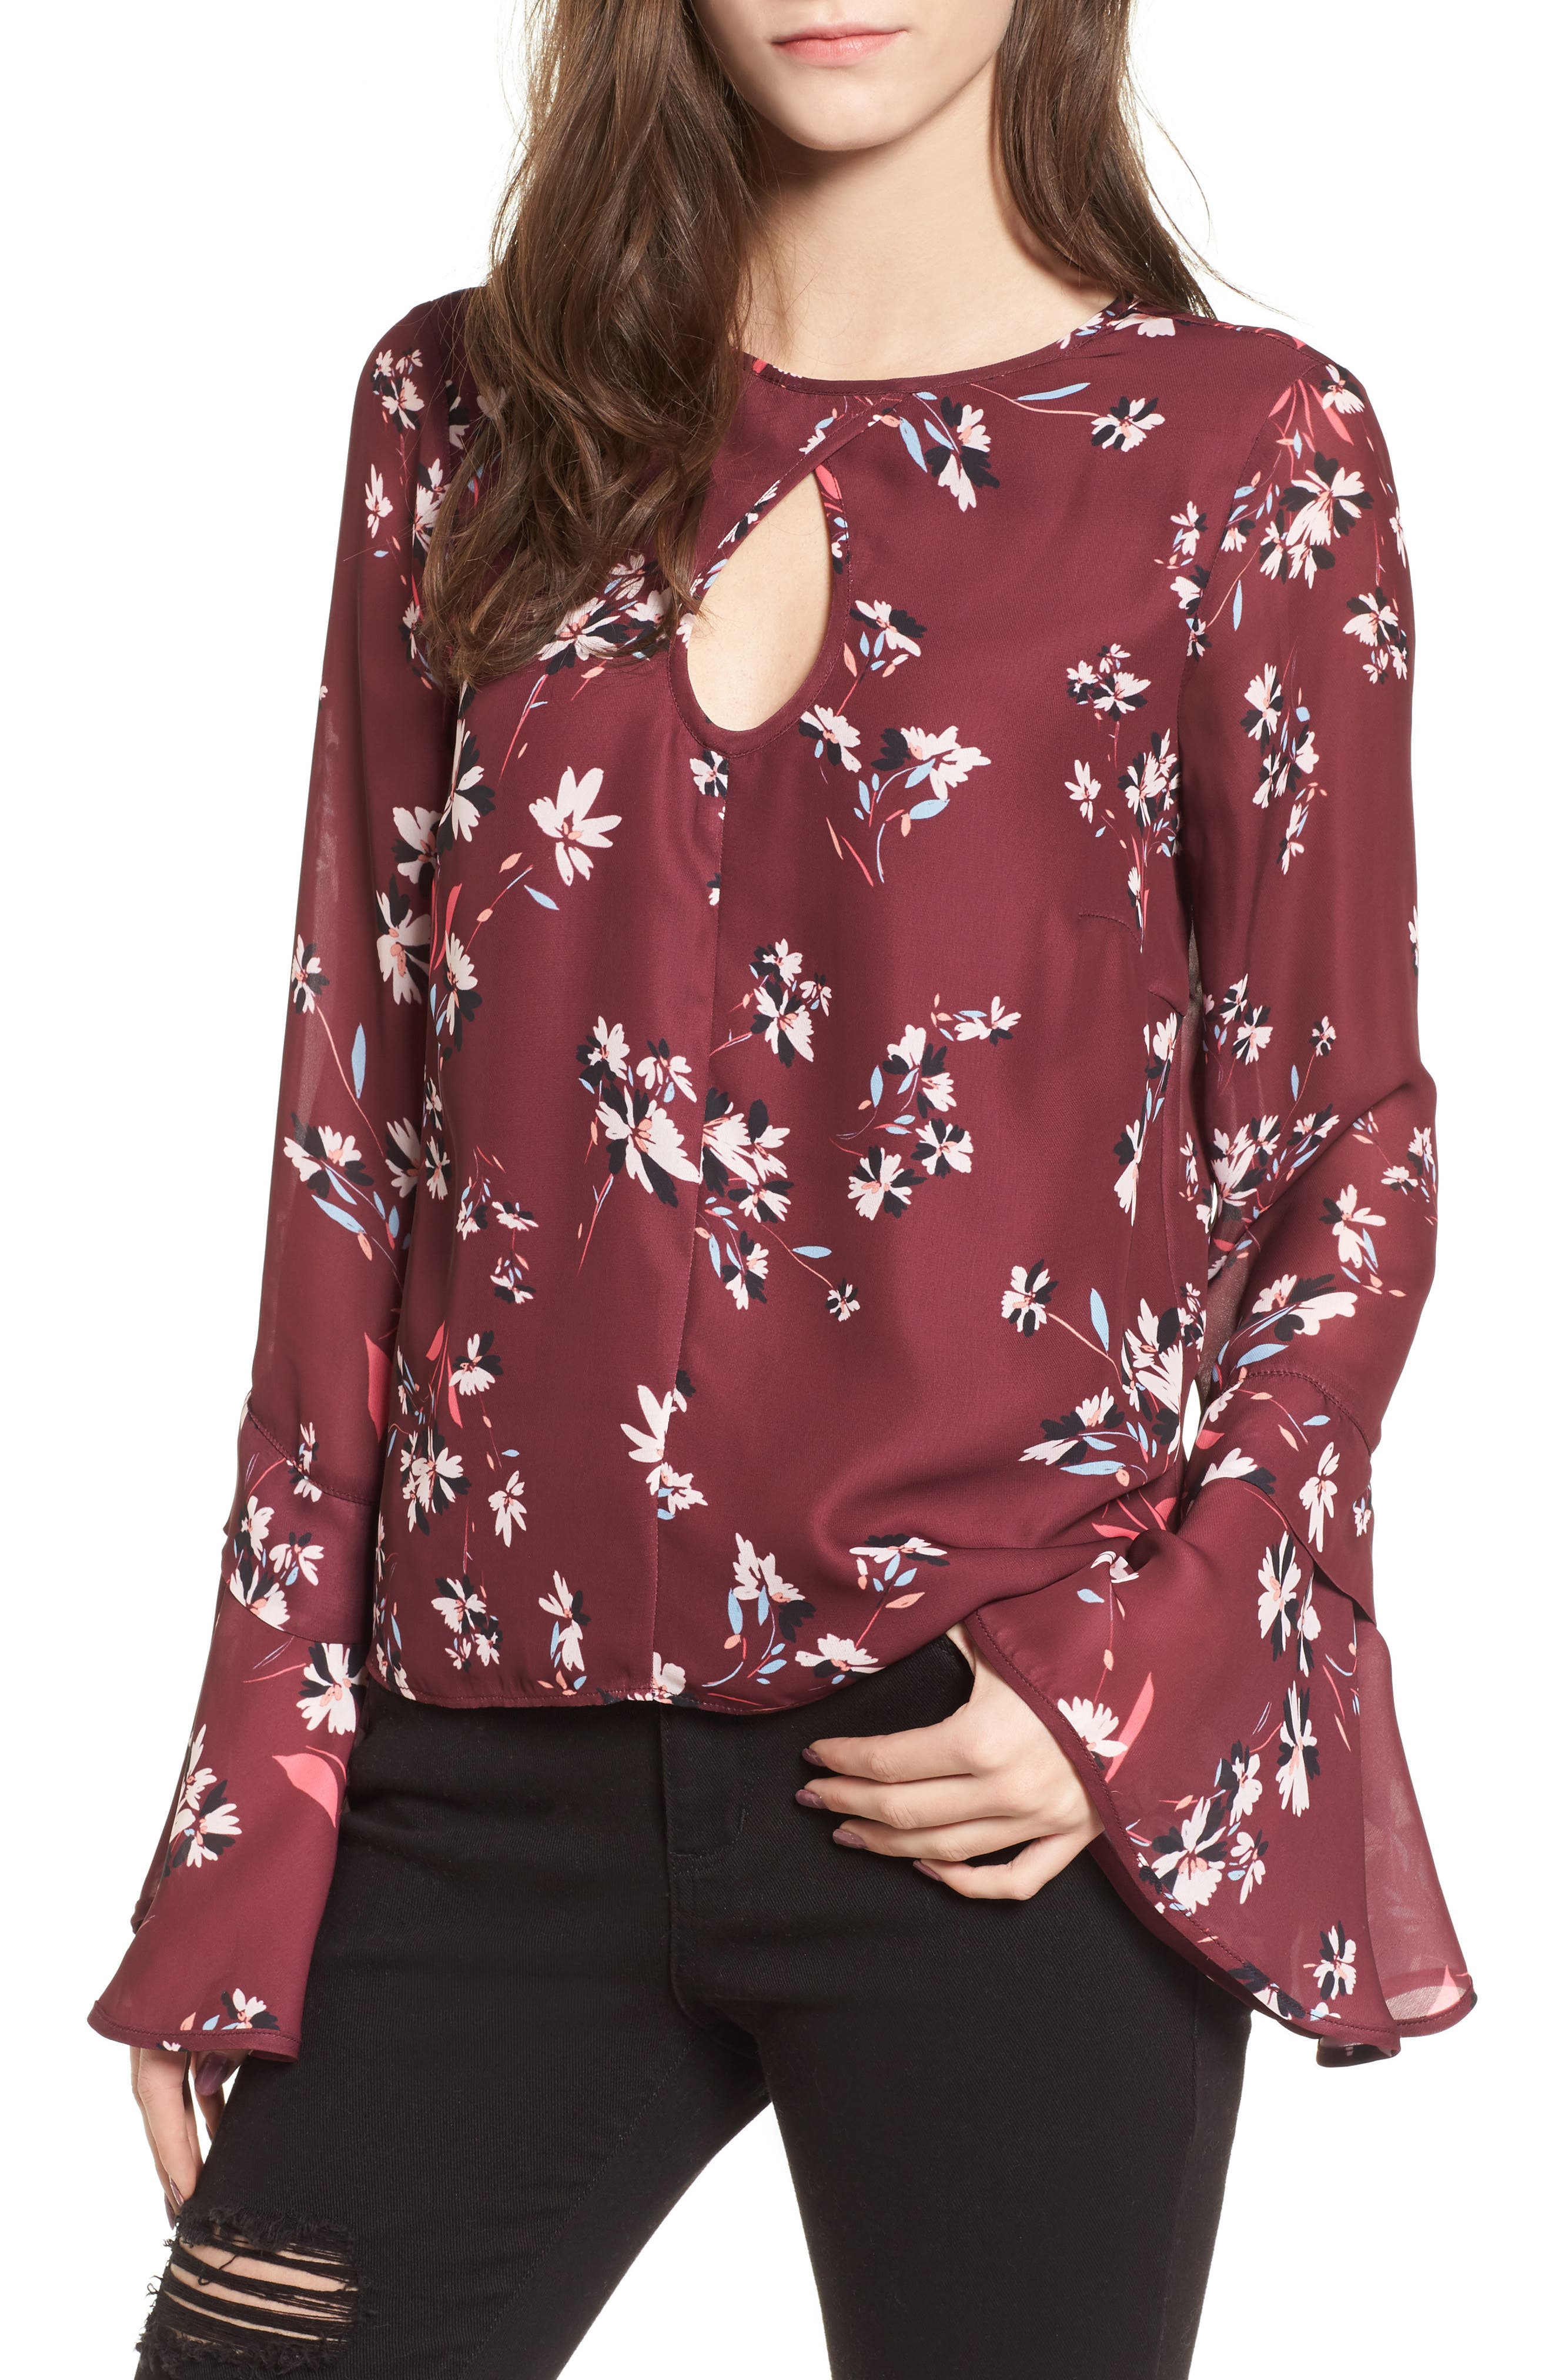 Sonoma Bell Sleeve Blouse,                         Main,                         color, 930